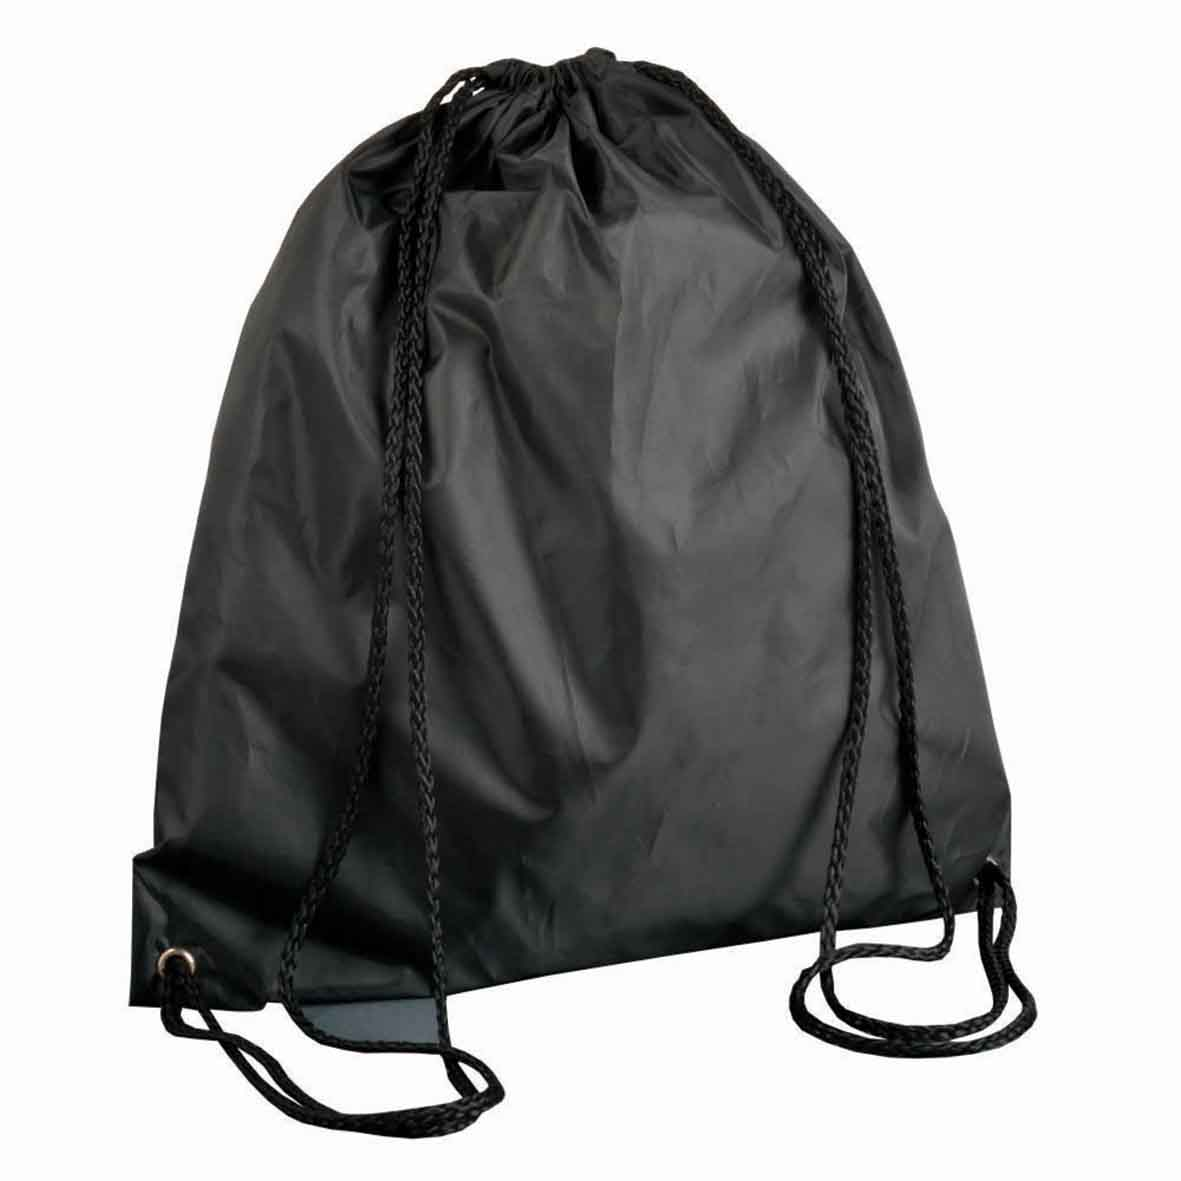 210T POLYESTER DRAWSTRING BACKPACK gb-286 bk